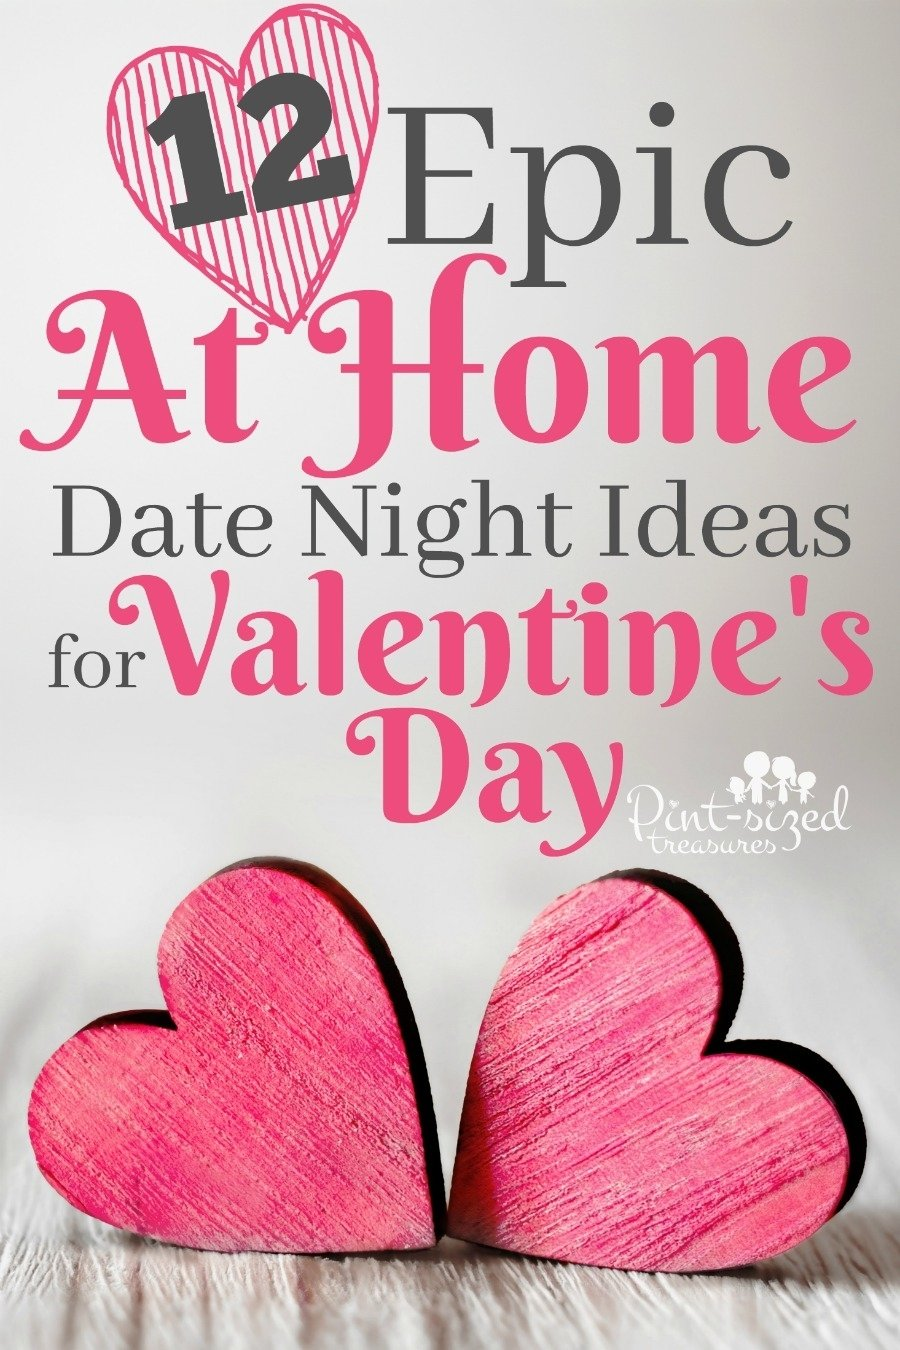 10 Perfect Good Valentines Day Date Ideas 12 epic at home date night ideas for valentines day c2b7 pint sized 2020